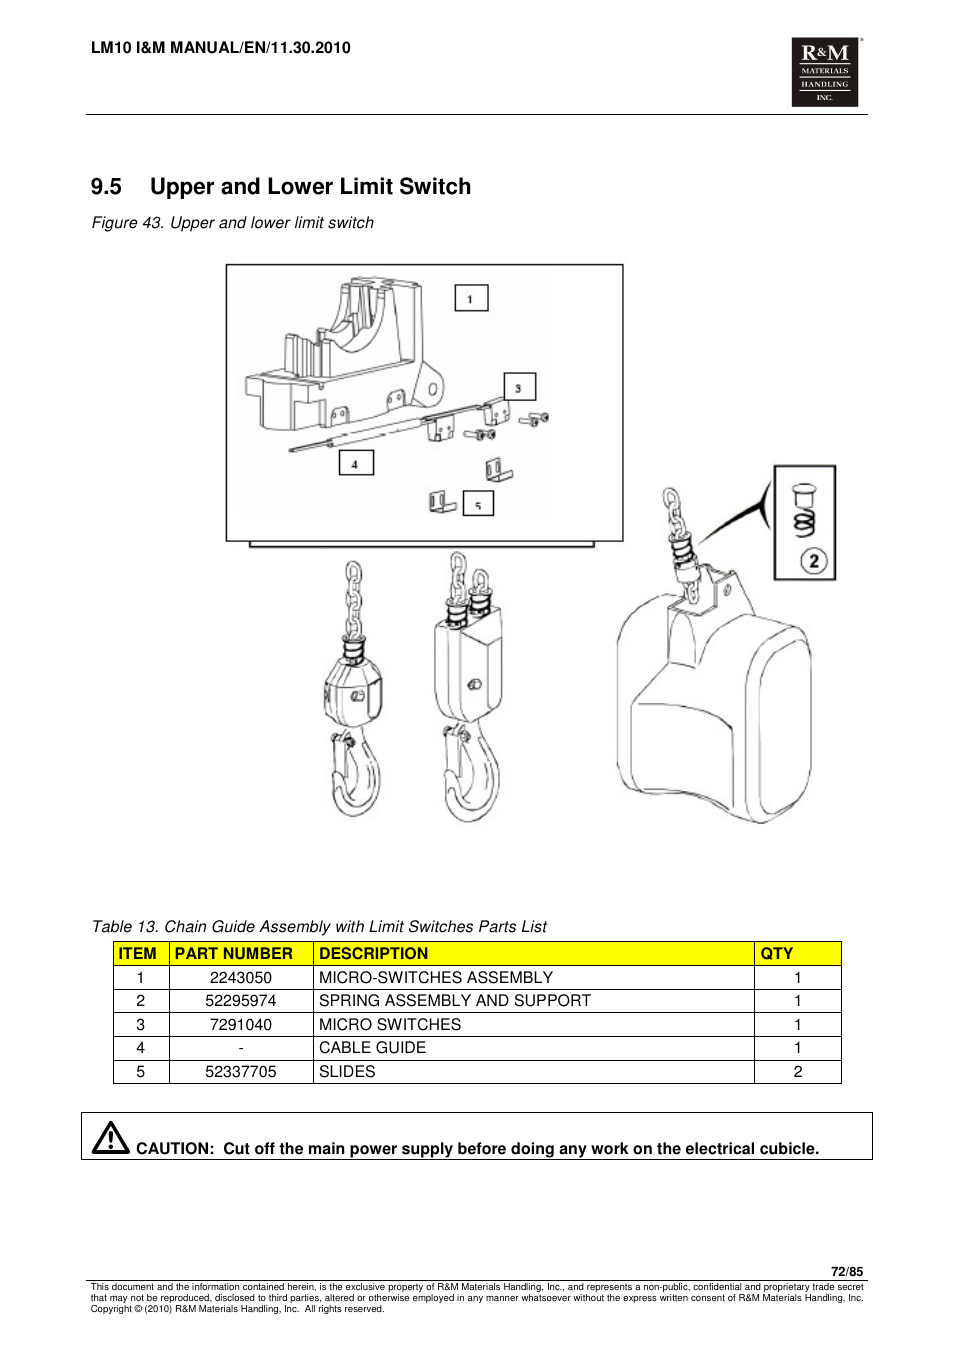 Pendant Wiring Diagram Lm 10 Great Design Of Multiple Electrical Schematic Cm Hoist 5 Wire Light Fixture Push Button